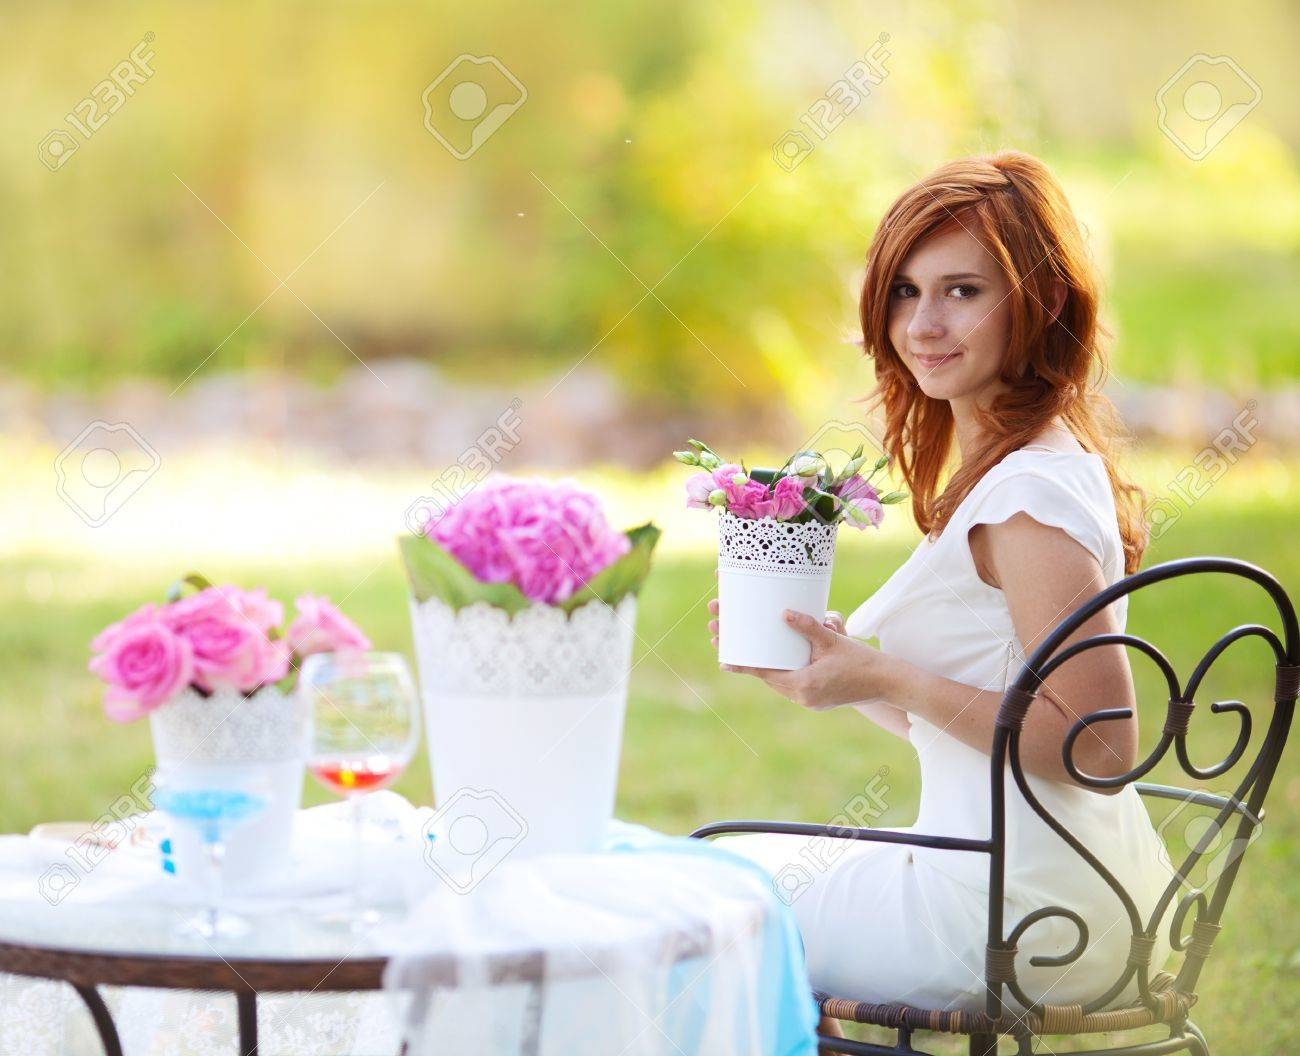 portrait of beautiful young woman with flowerpot in the hands Stock Photo - 13164353